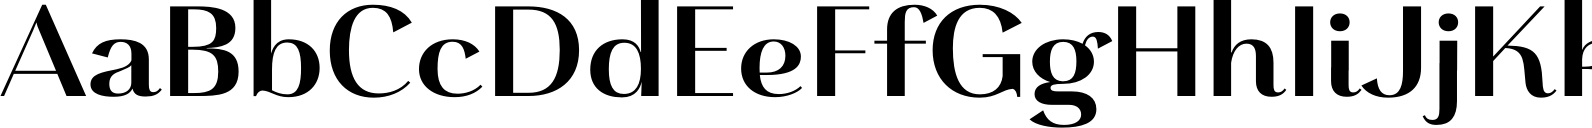 Grenale Norm Bold Font